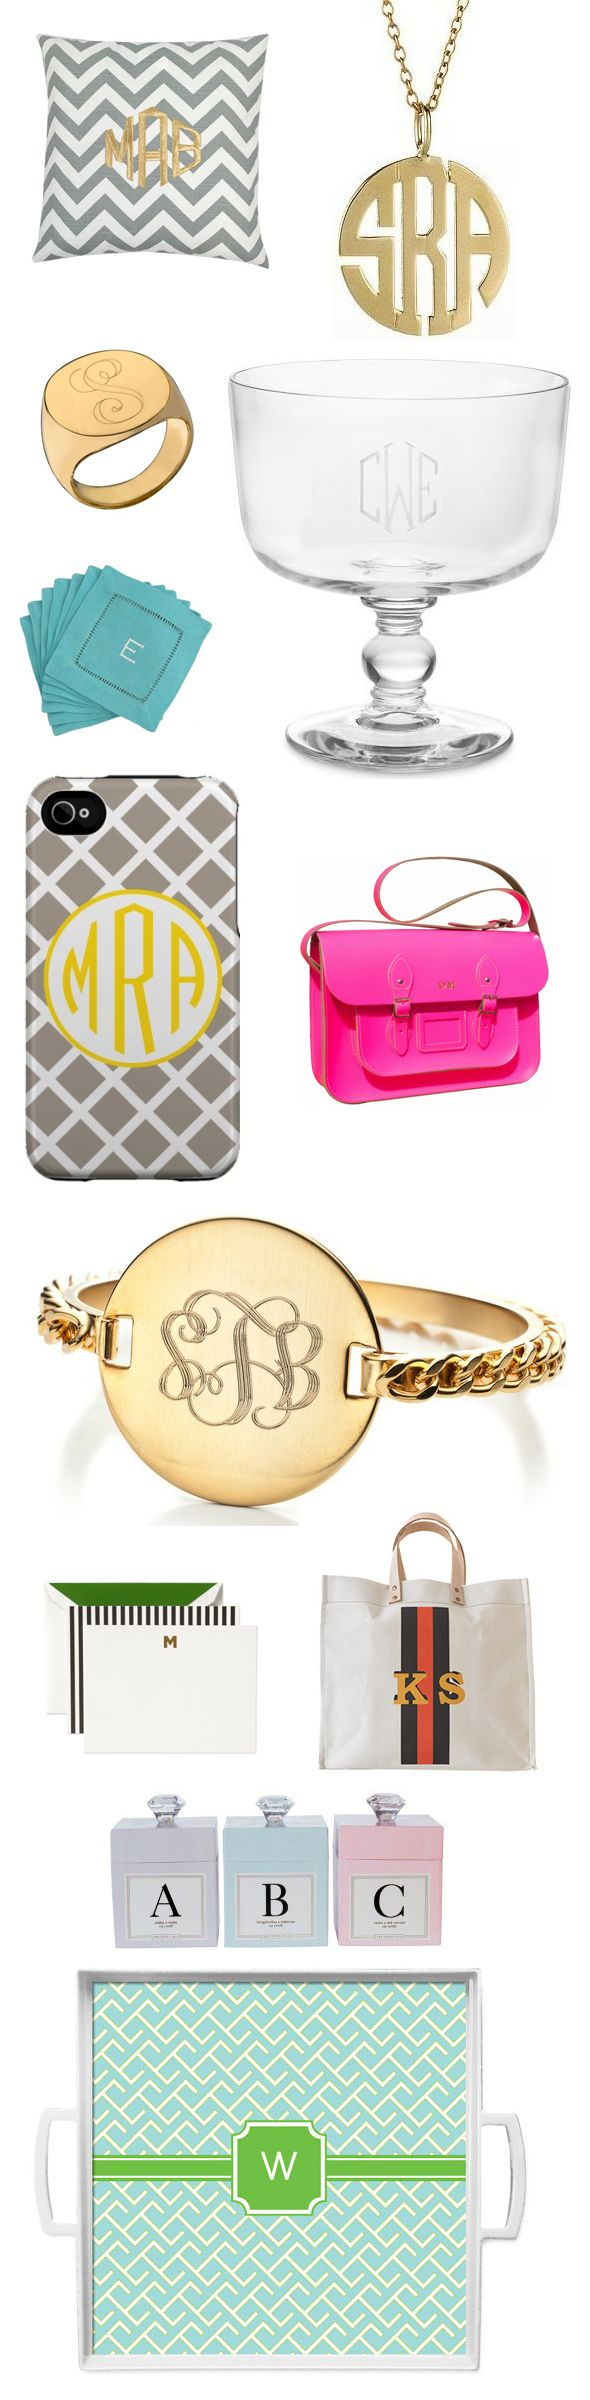 """if it isn't moving, monogram it"" - reese witherspoon"